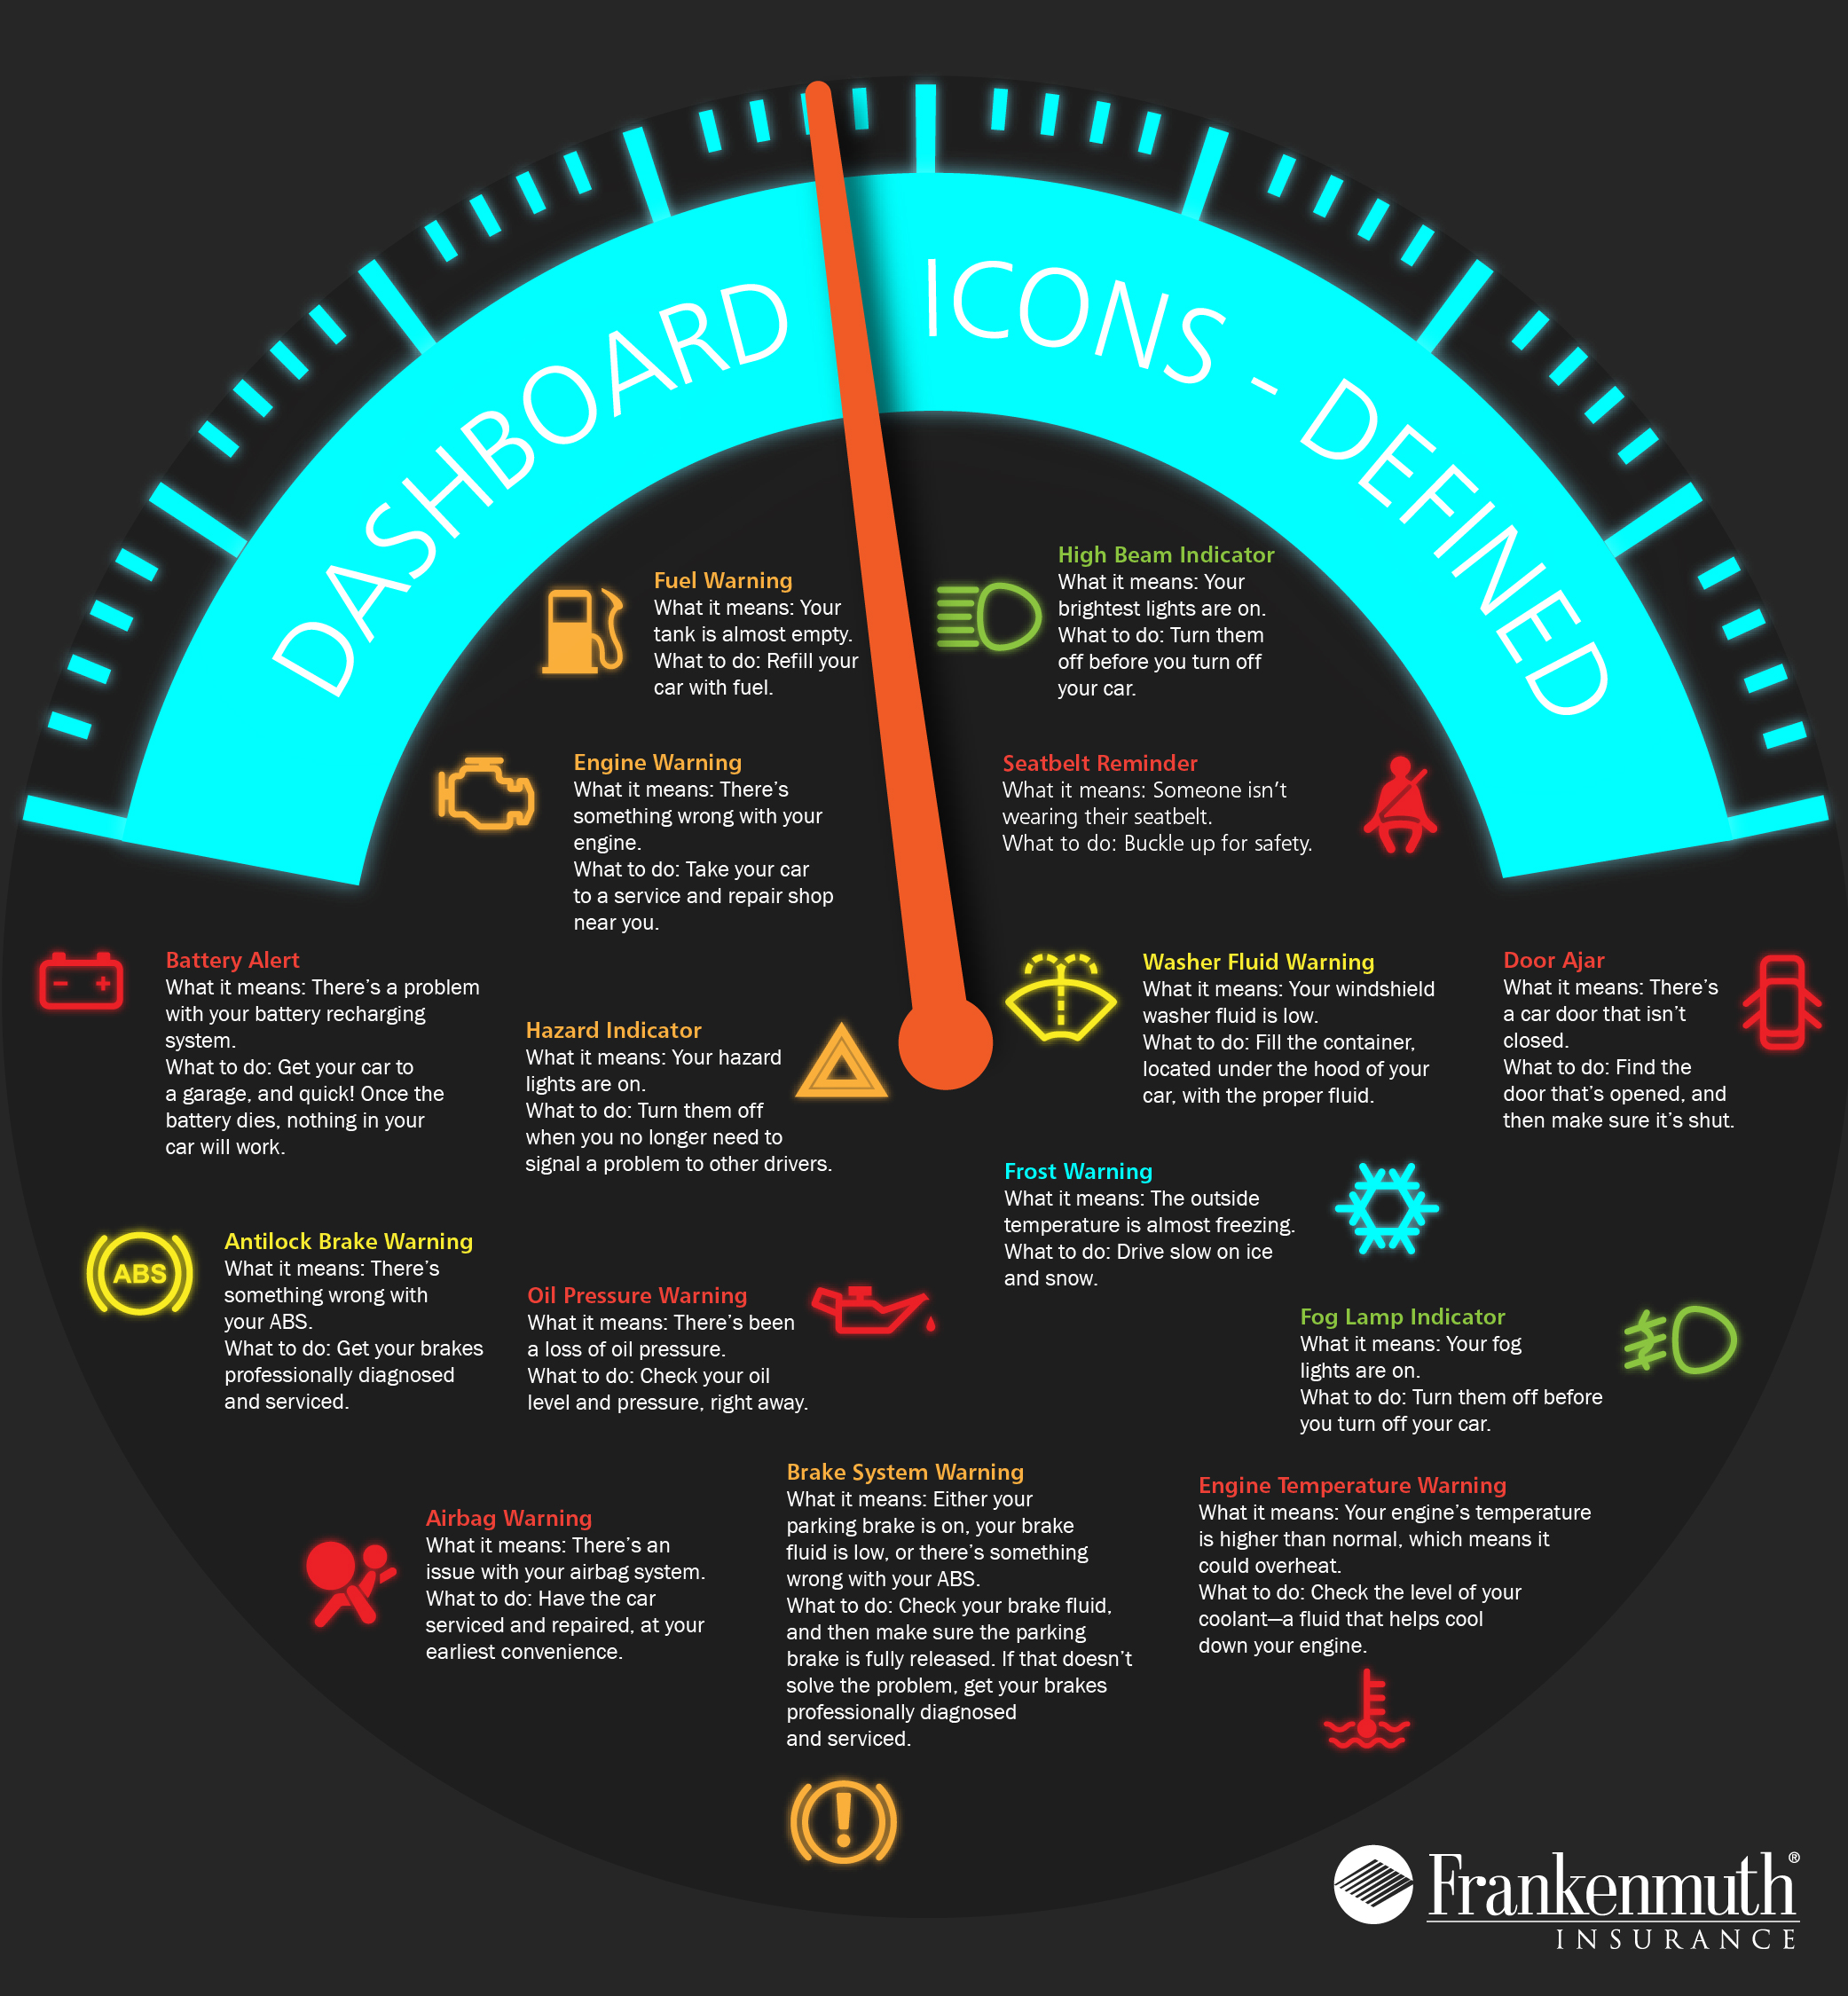 The Most Common Dashboard Icons Defined